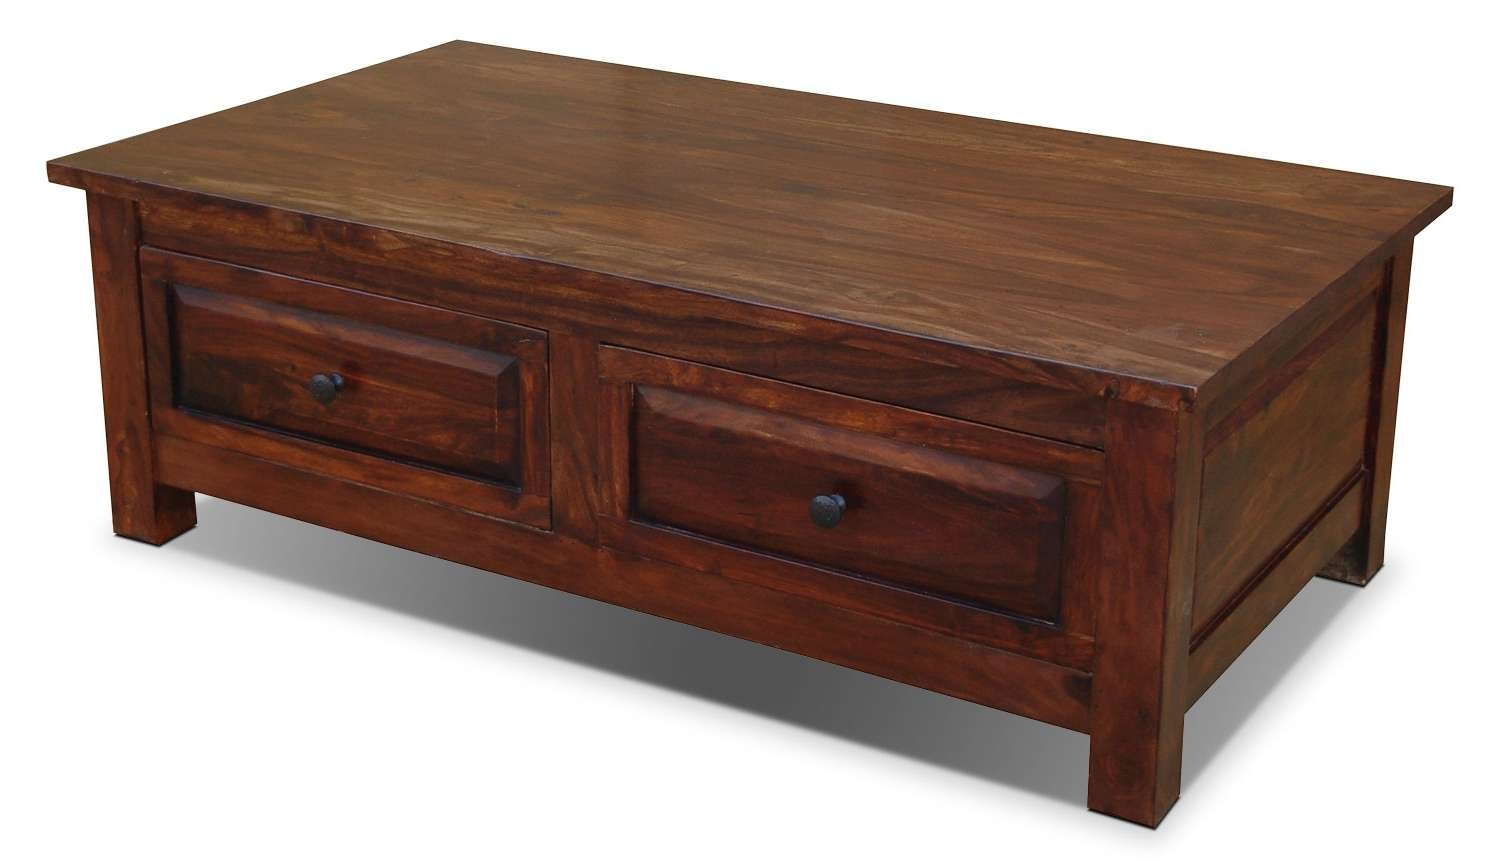 Wood Coffee Table With Storage 2018 Best Of Solid Oak Coffee Table With Storage